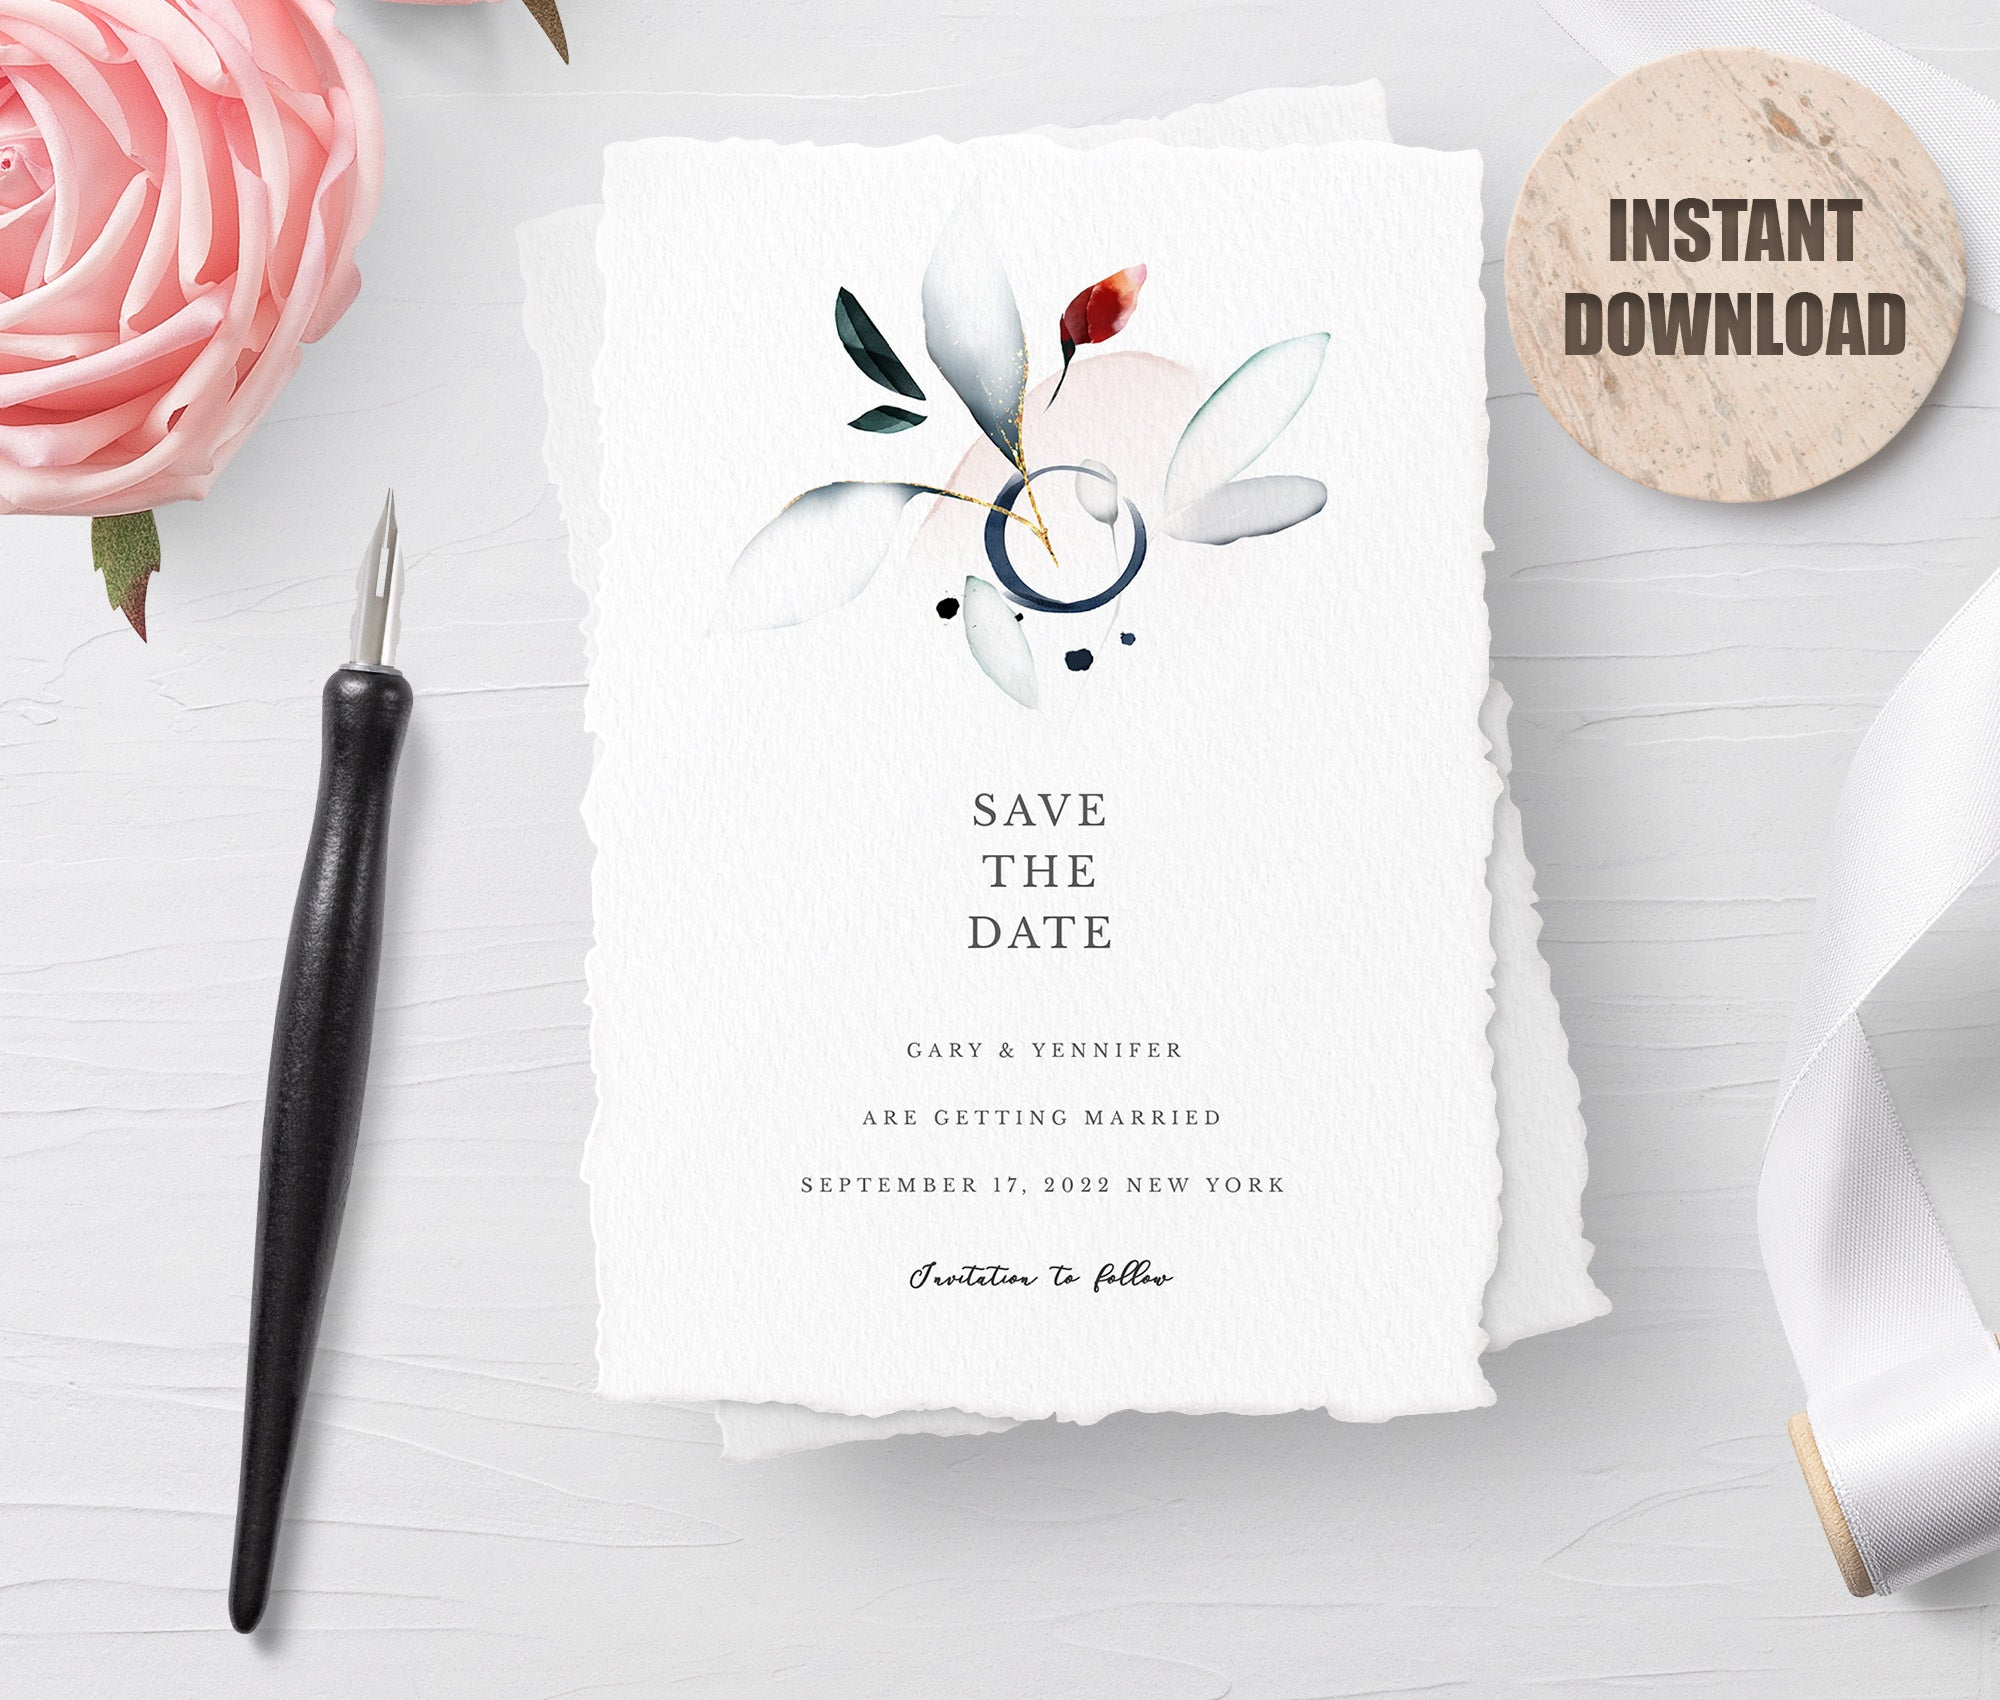 SPMR - Printable Save the Date Card set 6 - Greenlanderdesign